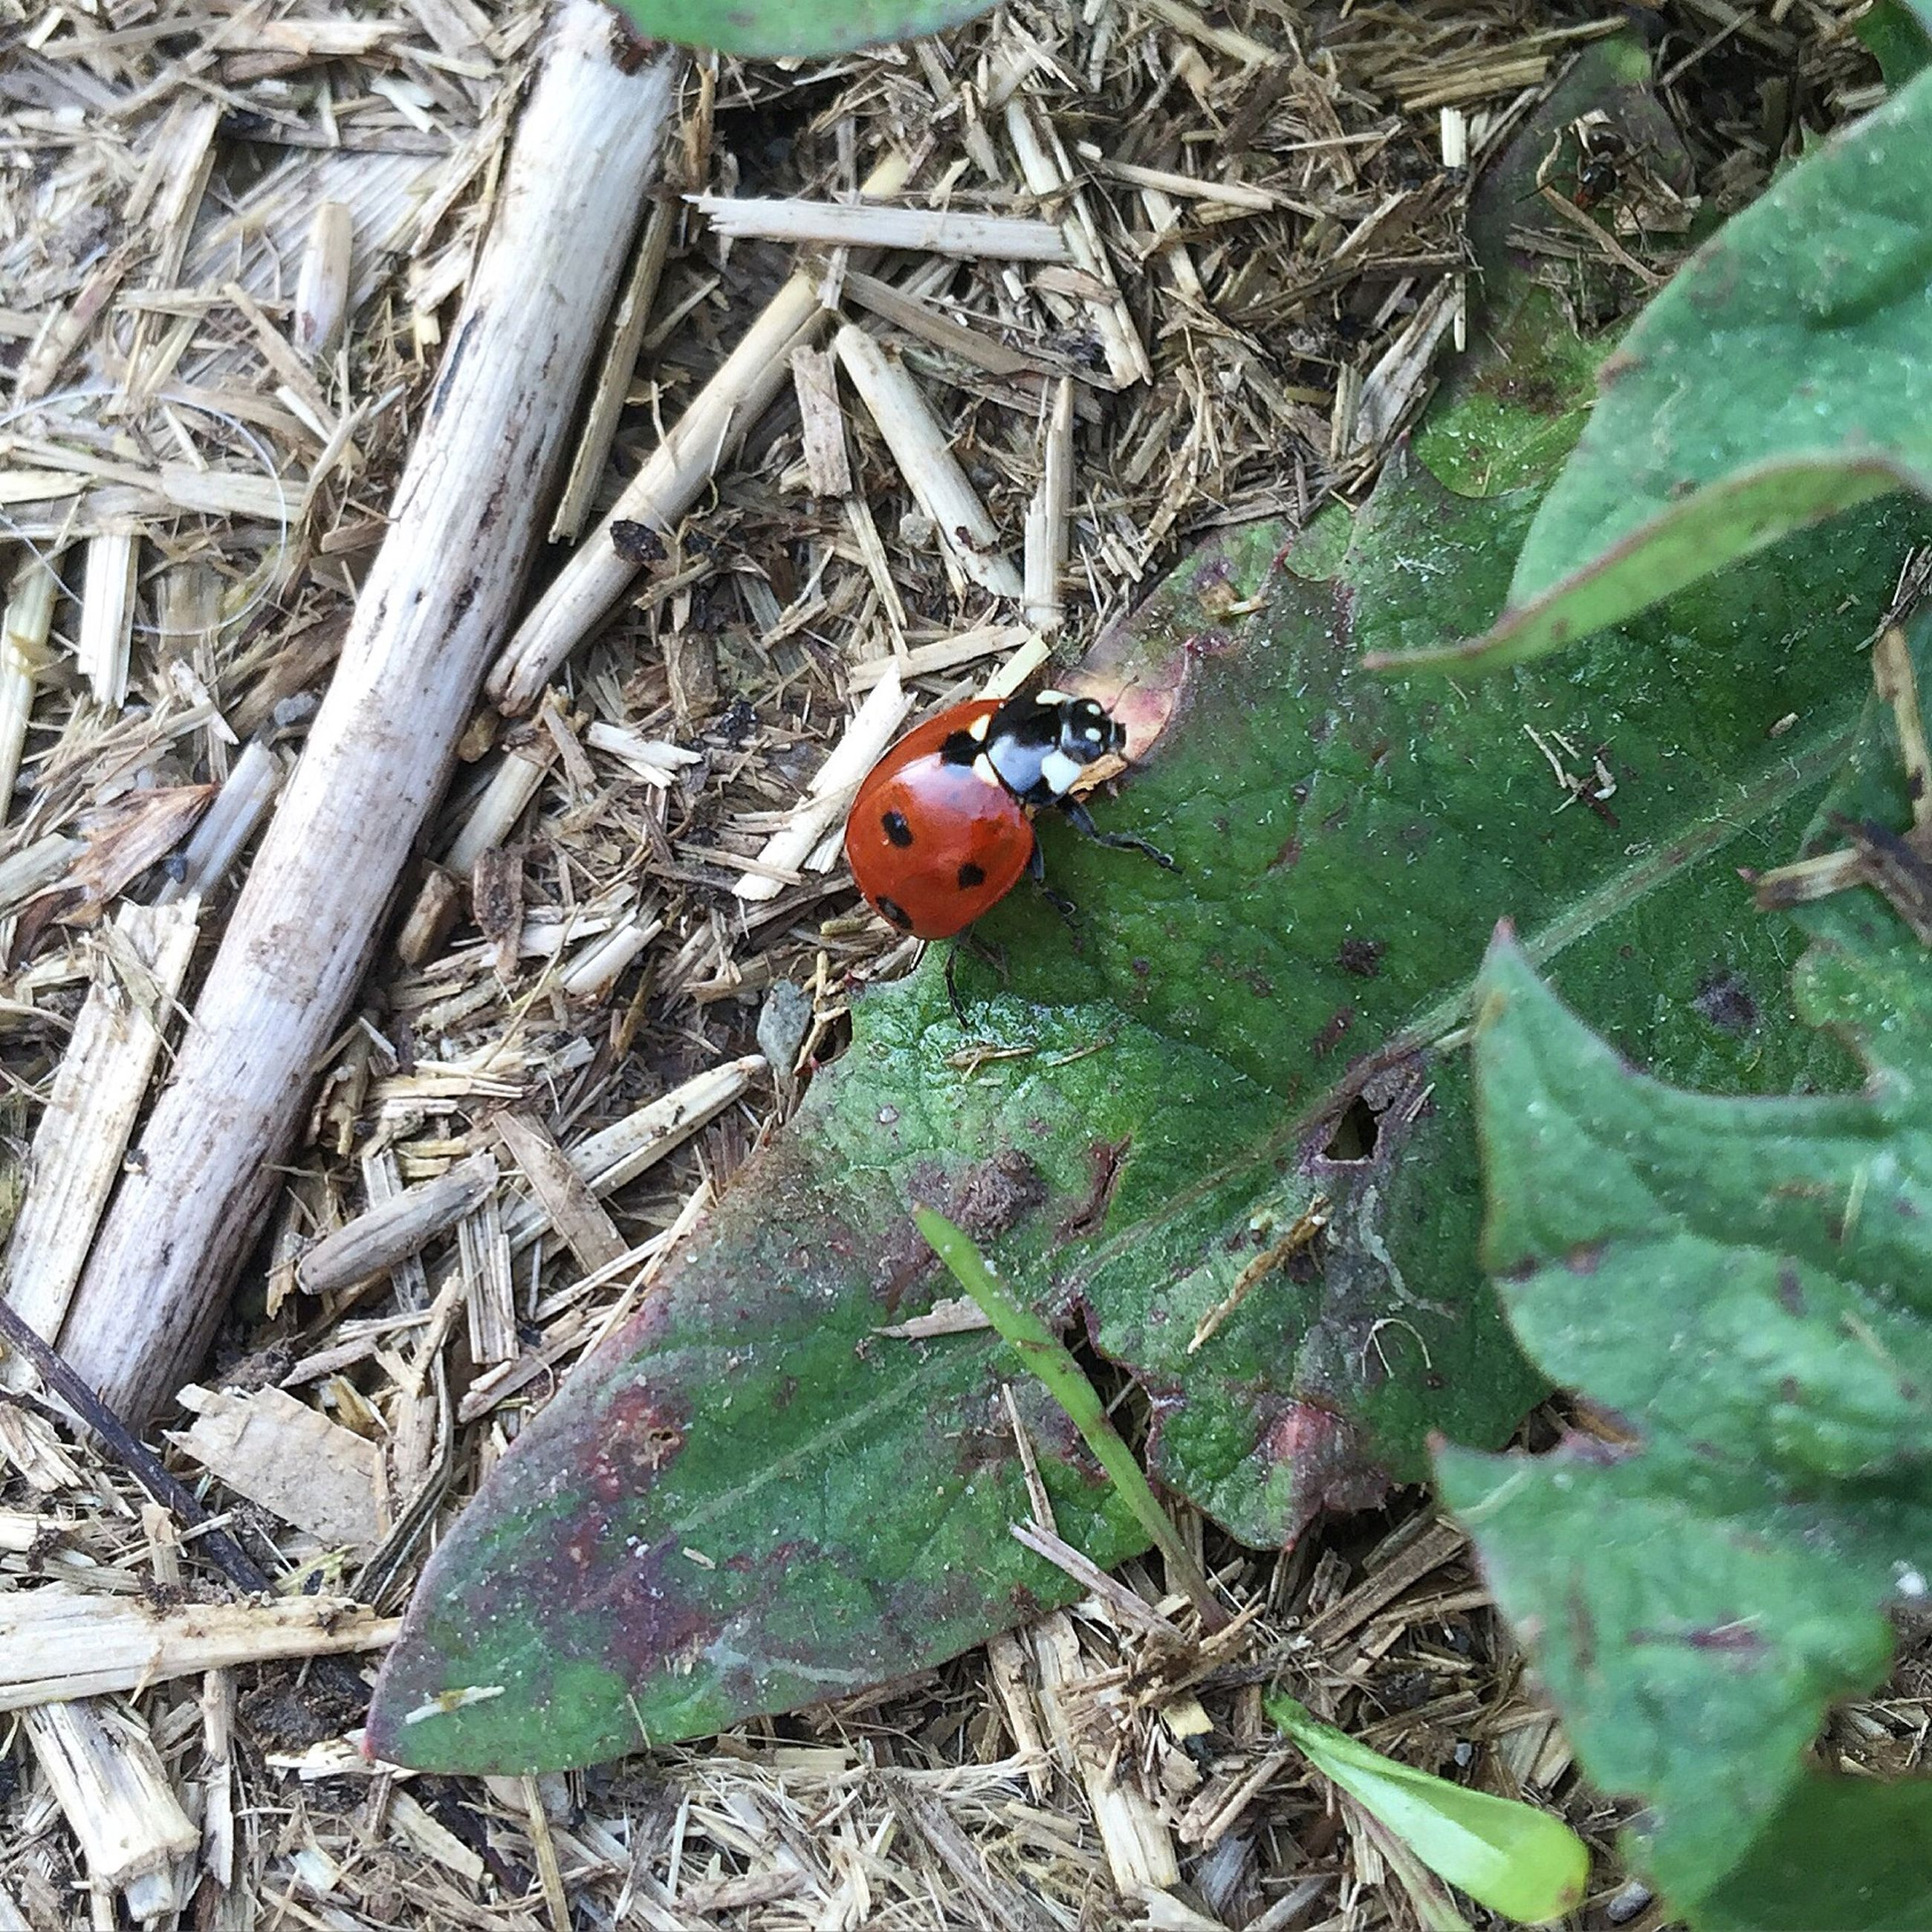 leaf, high angle view, animal themes, nature, insect, green color, wildlife, autumn, field, one animal, close-up, plant, growth, day, ladybug, animals in the wild, leaves, outdoors, grass, dry